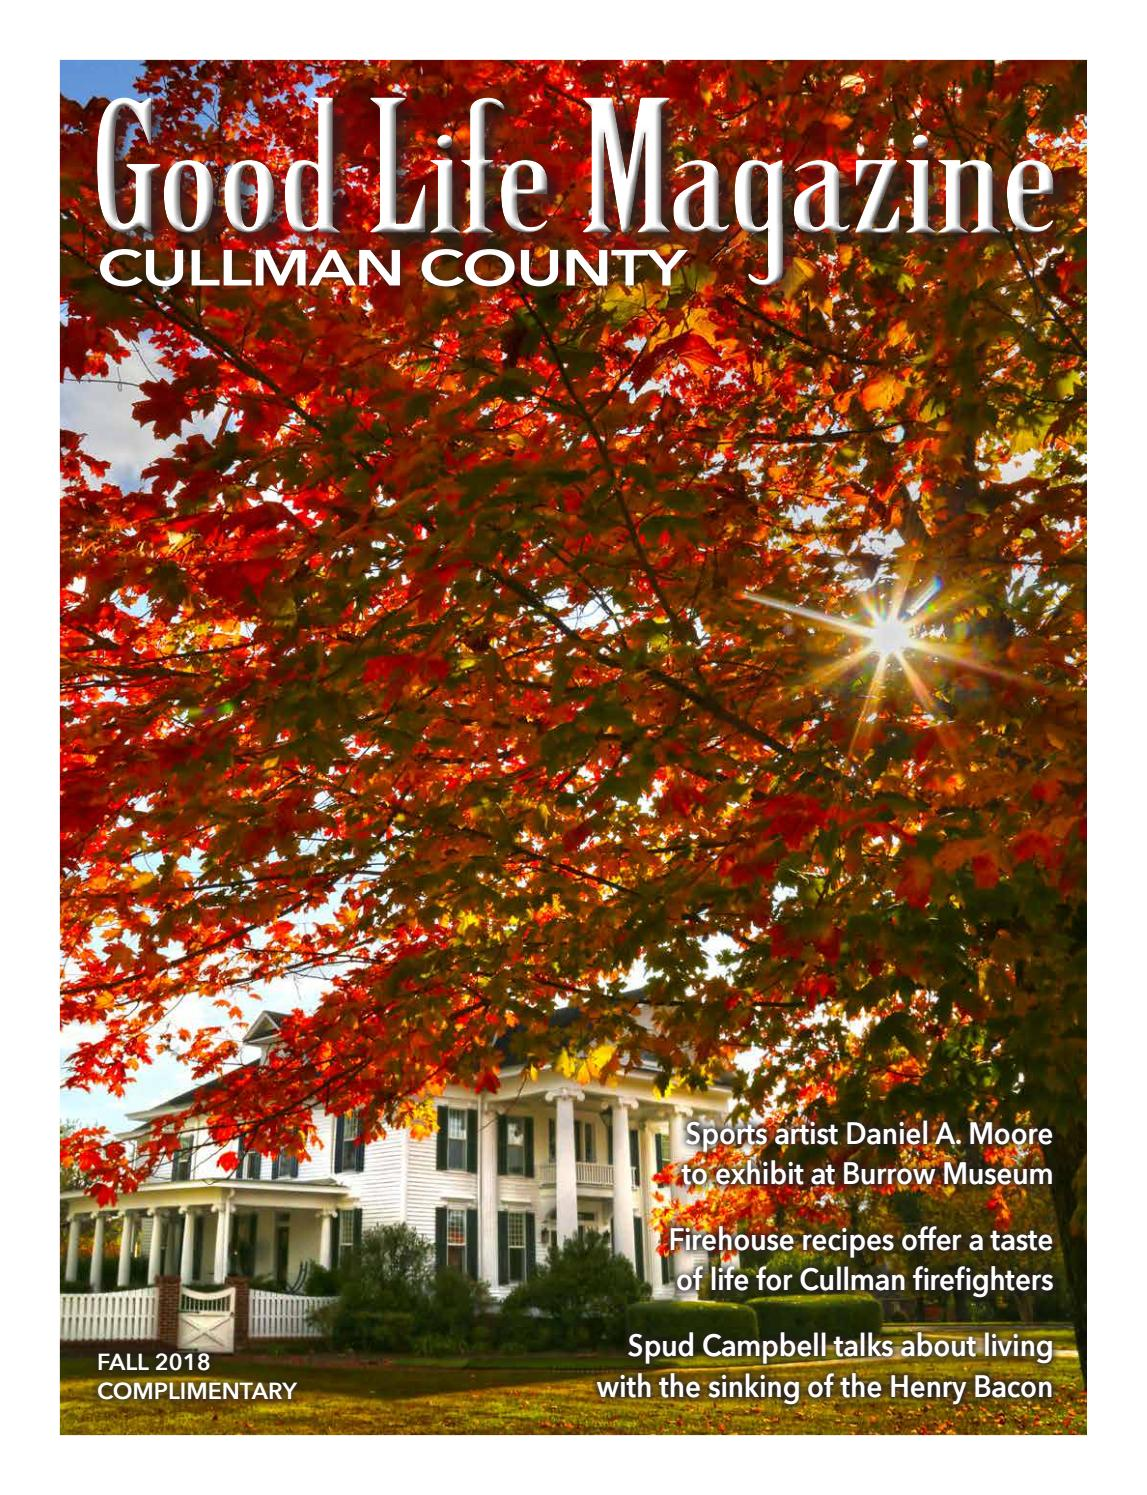 Cullman Goodlife Magazine Fall 2018 By The Good Life Magazine Issuu